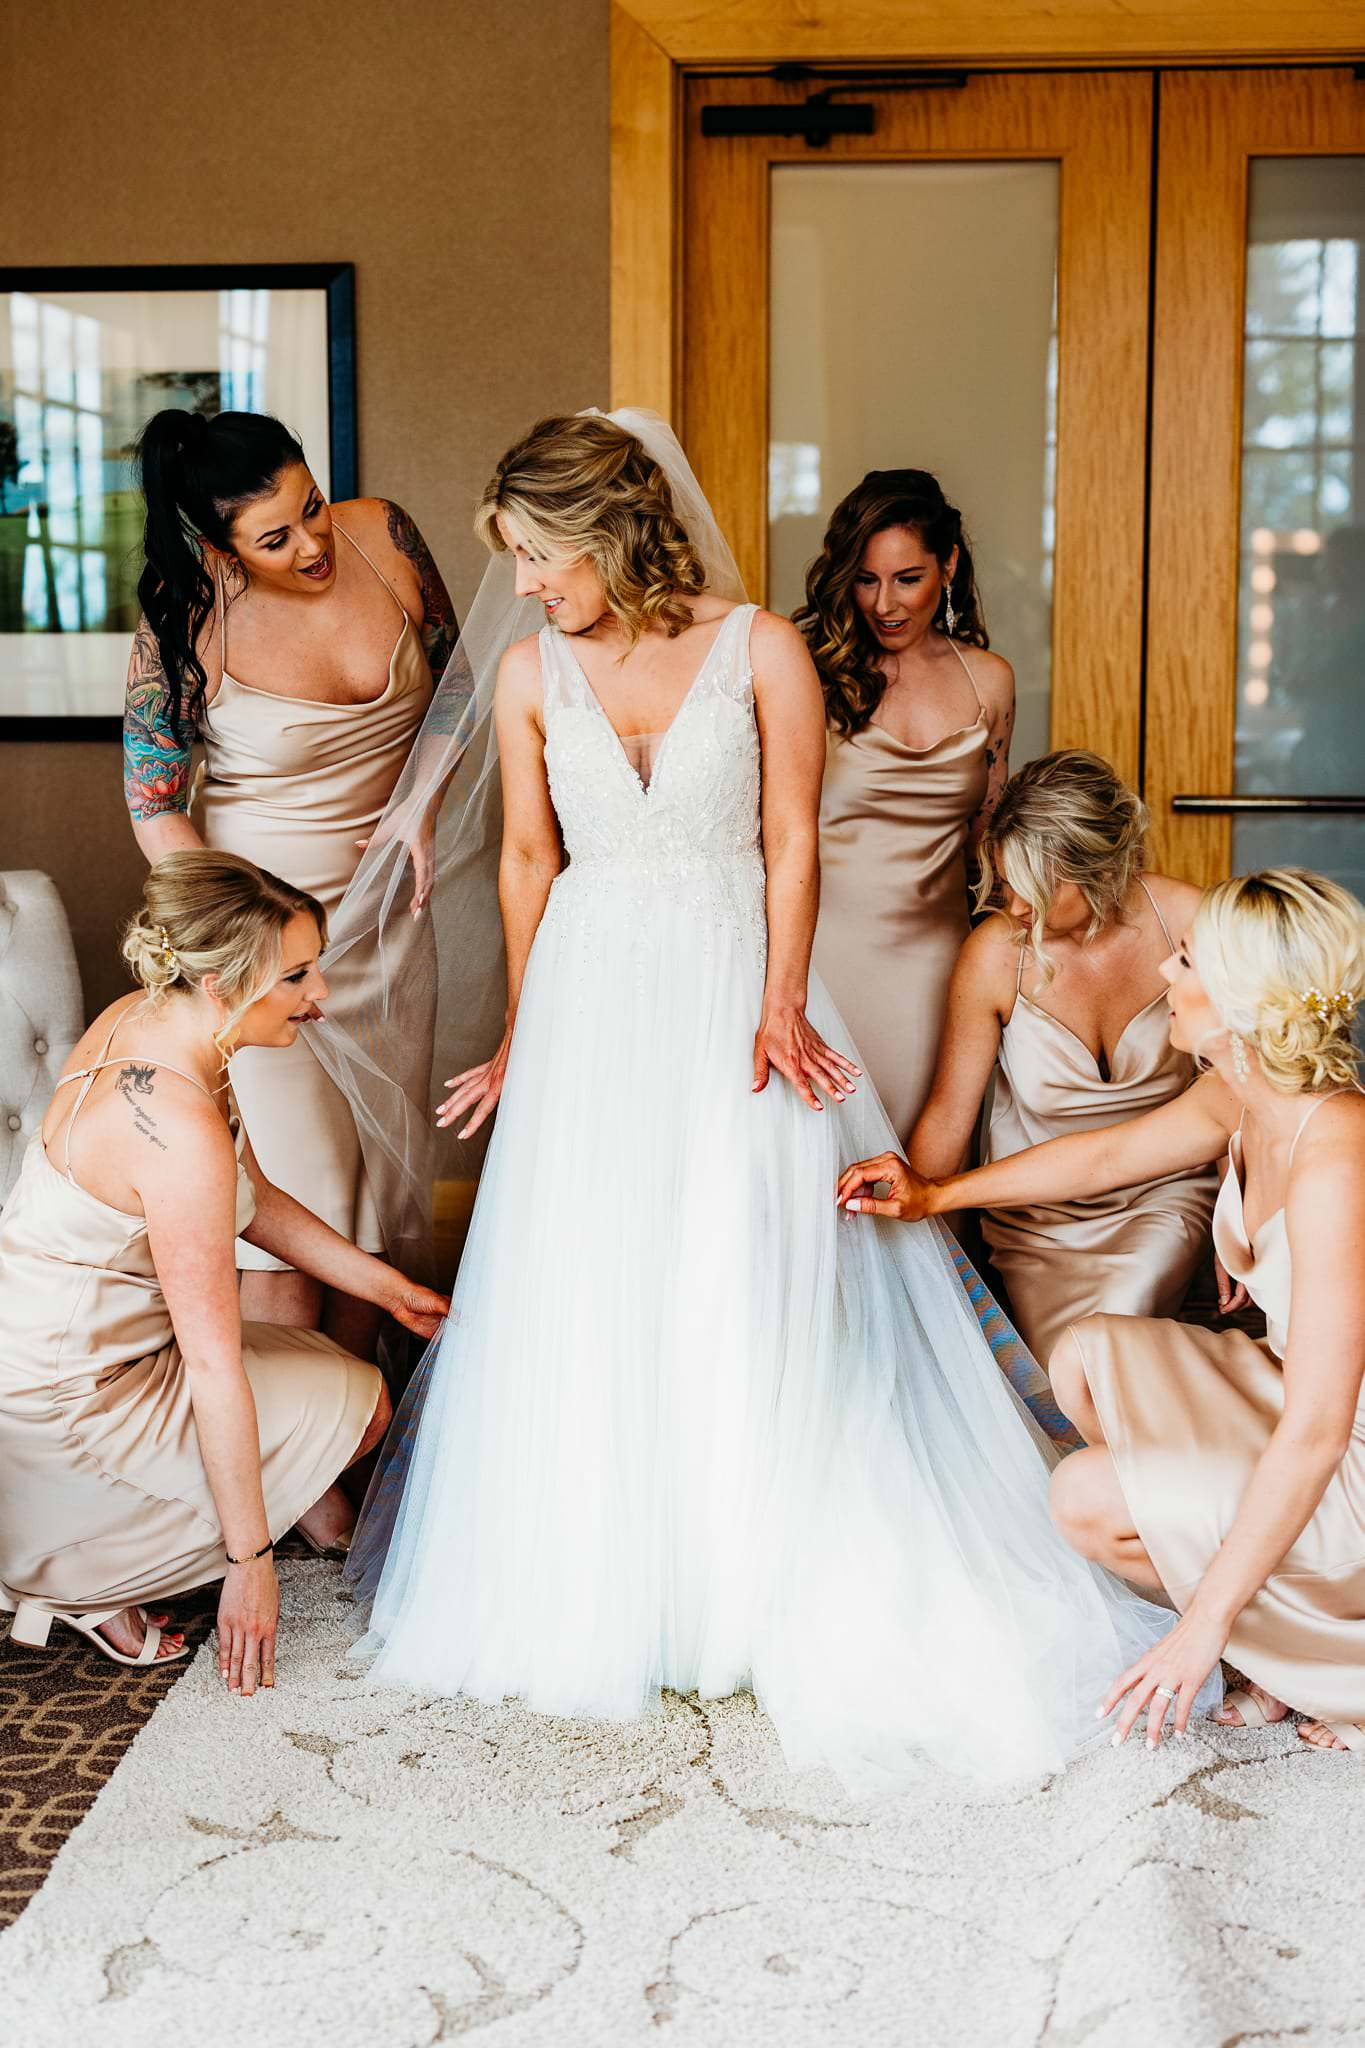 bridesmaids help bride get ready during in the dressing room at her hazeltine national golf club wedding